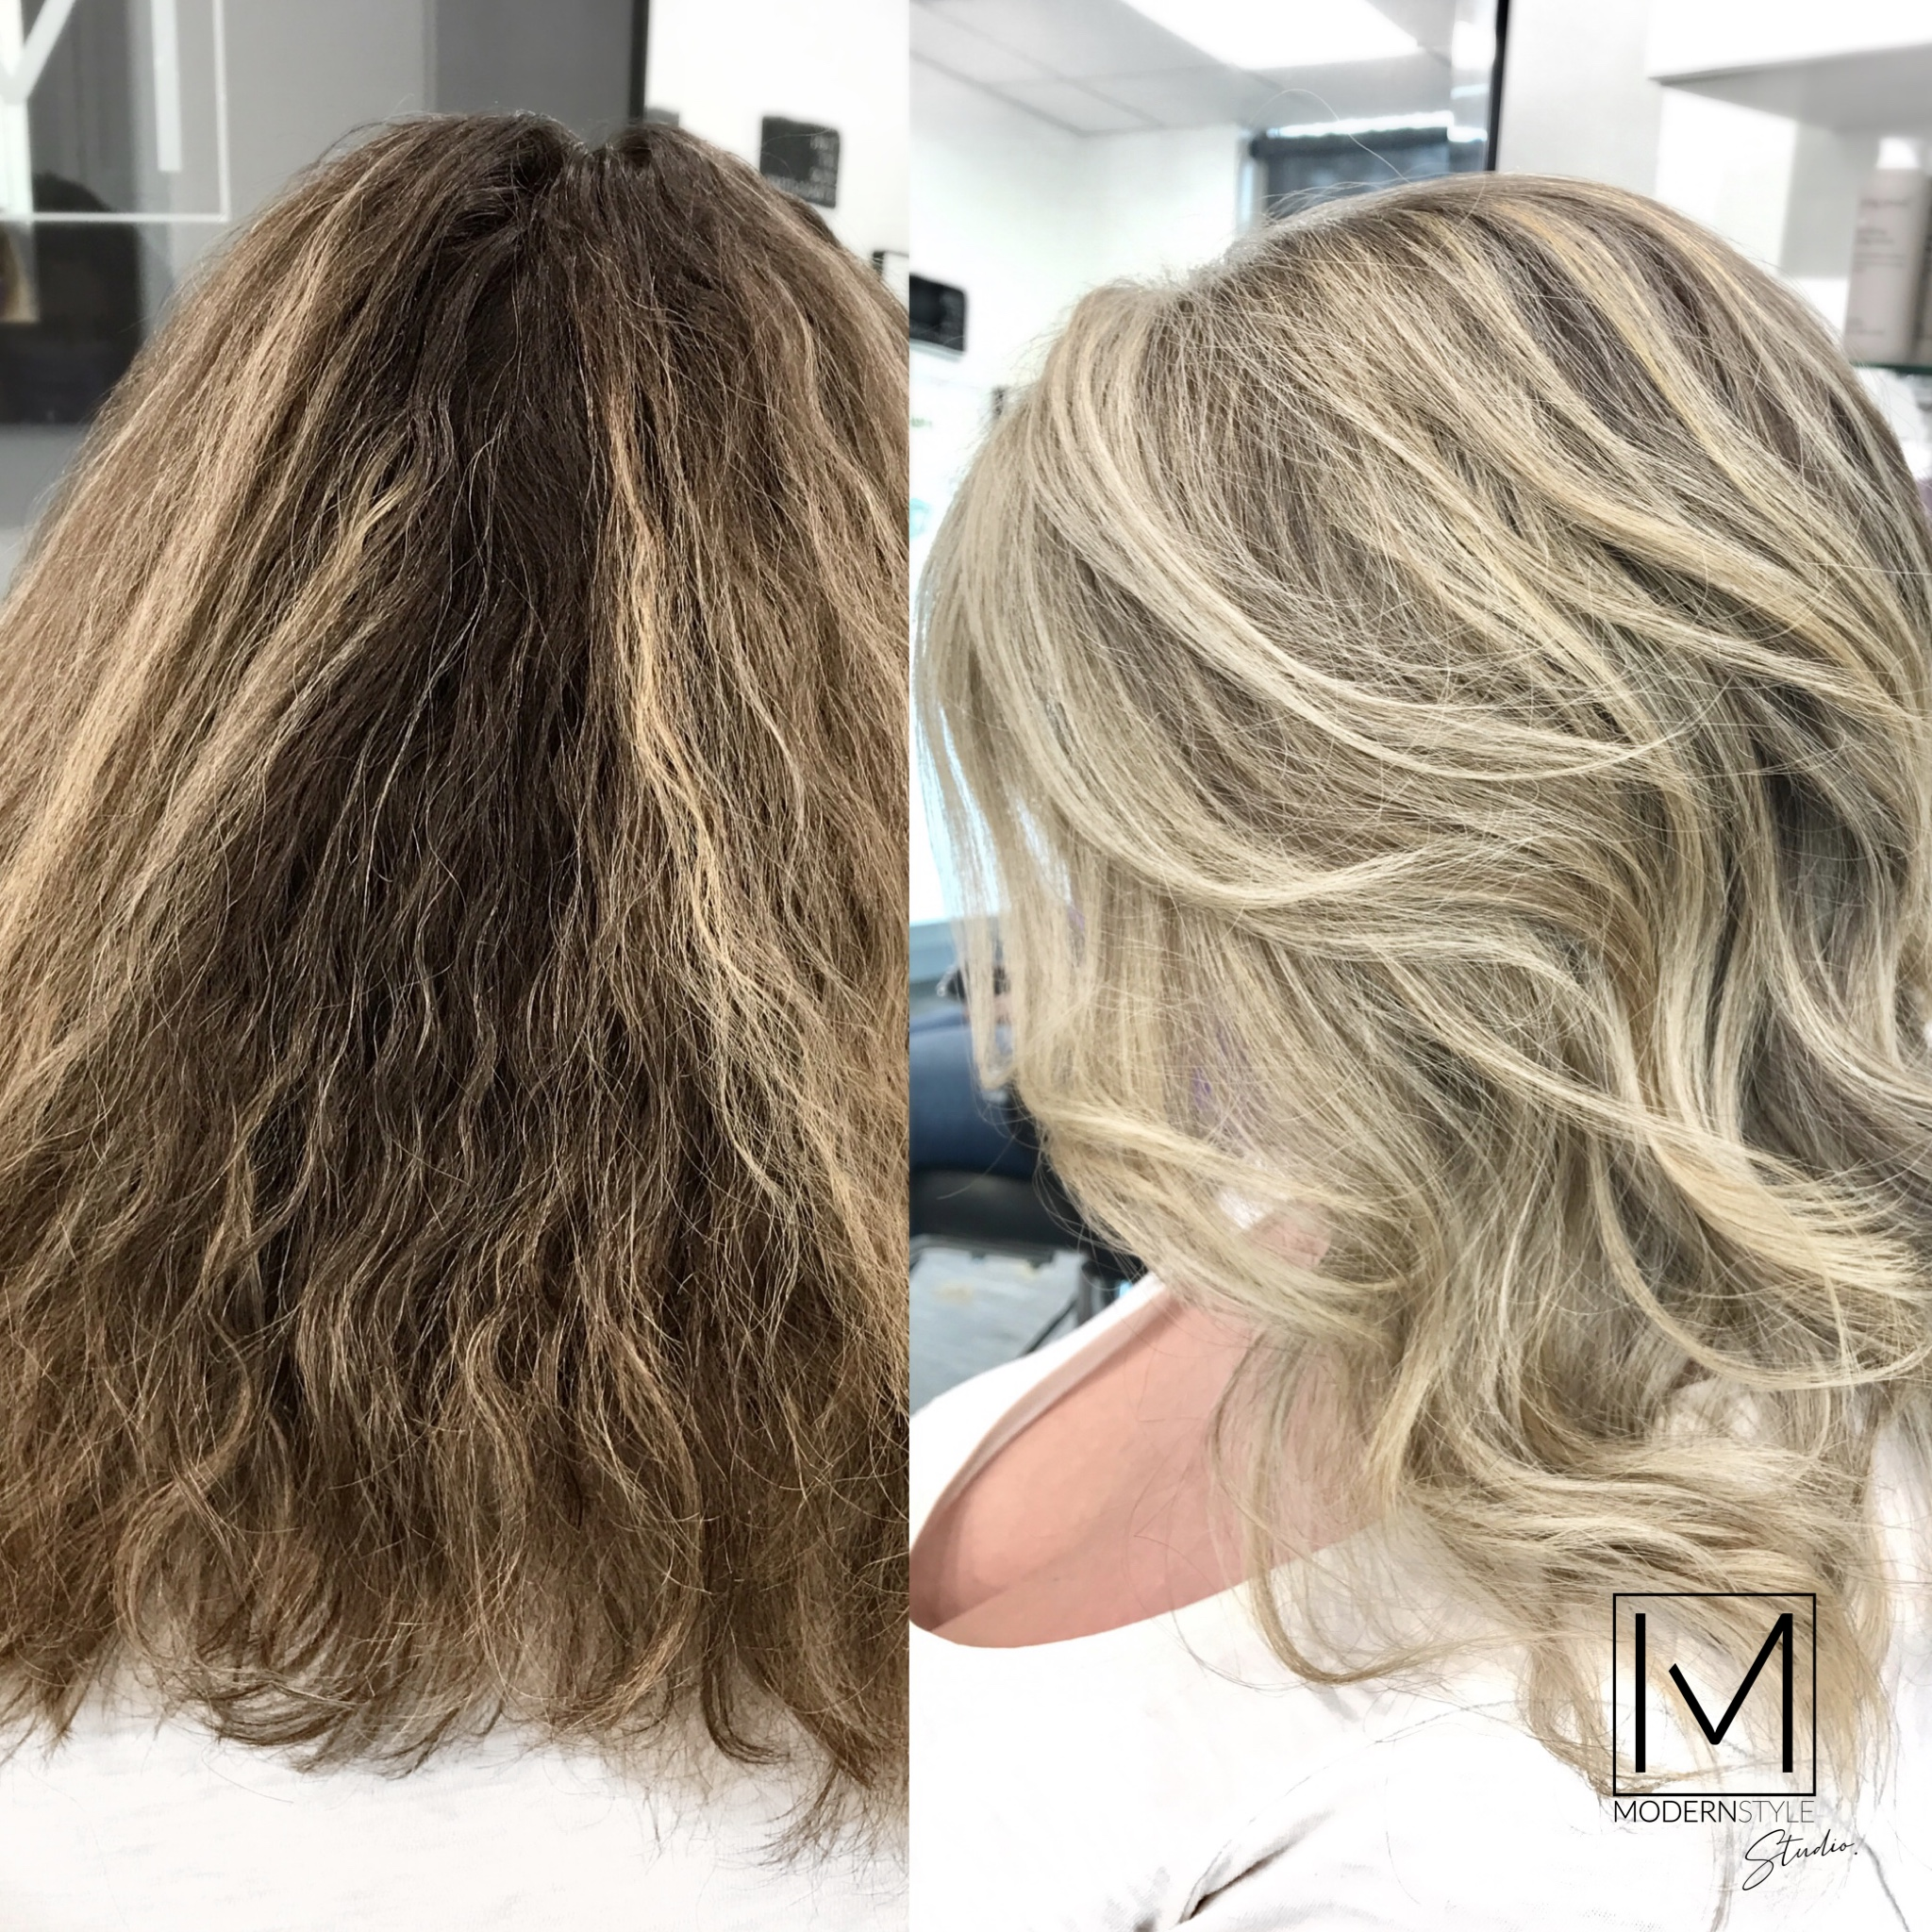 Best hair salon near me, Color correction specialist Charlotte, best colorist in Charlotte NC, top salons in Charlotte NC, Olaplex salon Charlotte, blonde specialist in Charlotte, Goldwell salon Charlotte, best hair stylist in Charlotte, top hair salons near me, hair salons near me, Waverly Charlotte, Rea Farms, top hair salons in Charlotte nc, best color correction specialist Charlotte, hair color experts near me